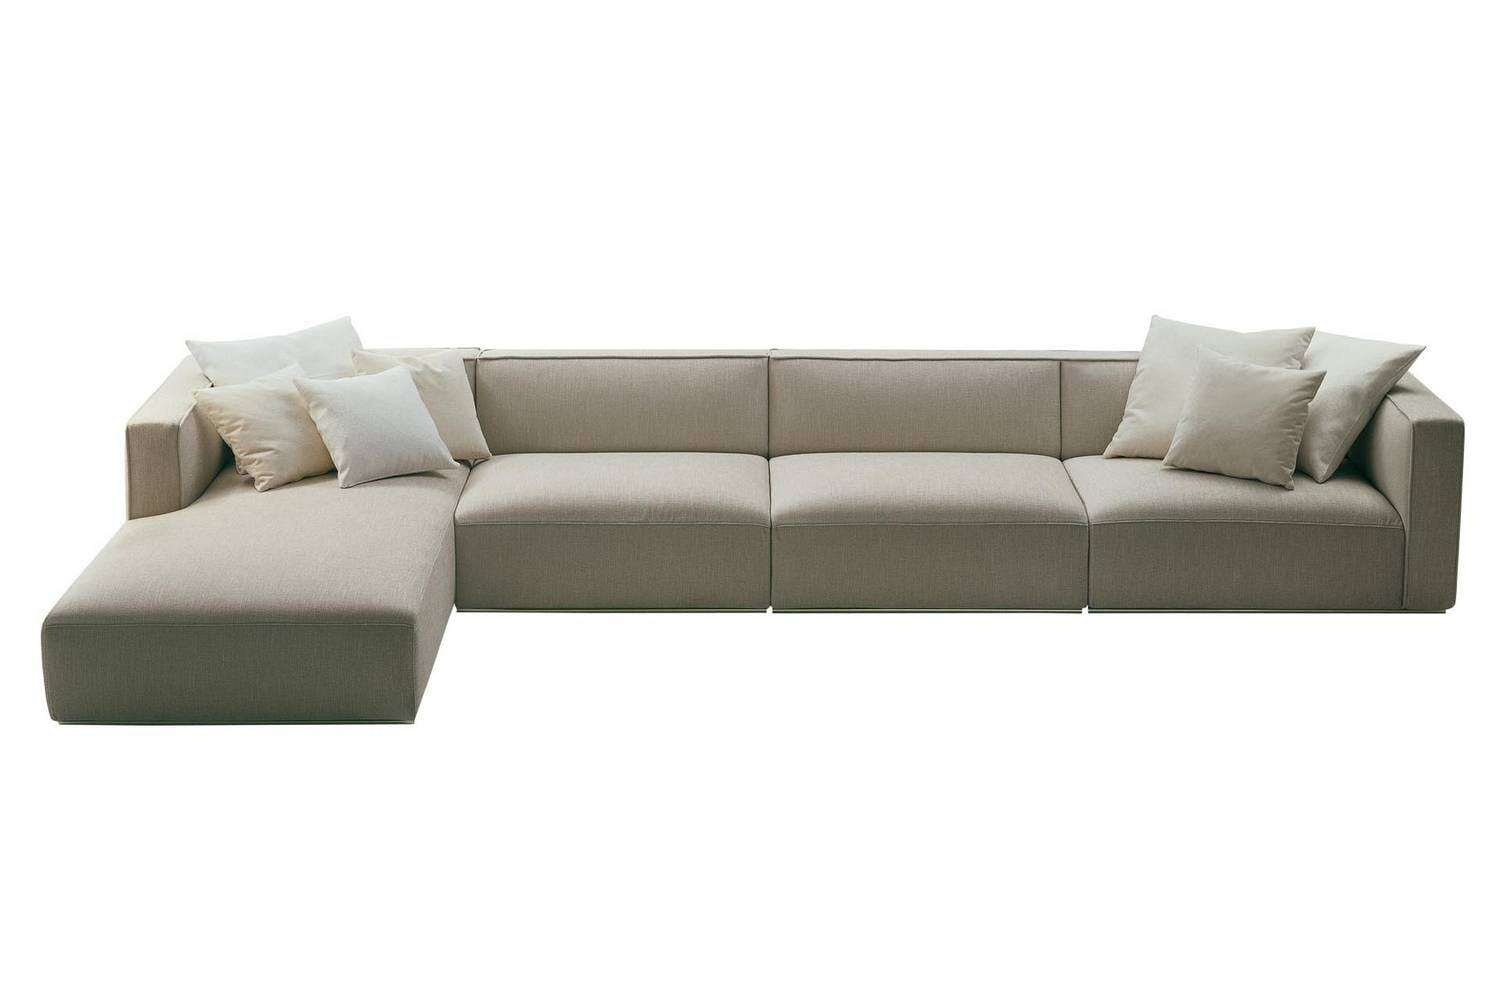 Poliform sofa tribeca sofa sofas from poliform architonic for Trendy furniture